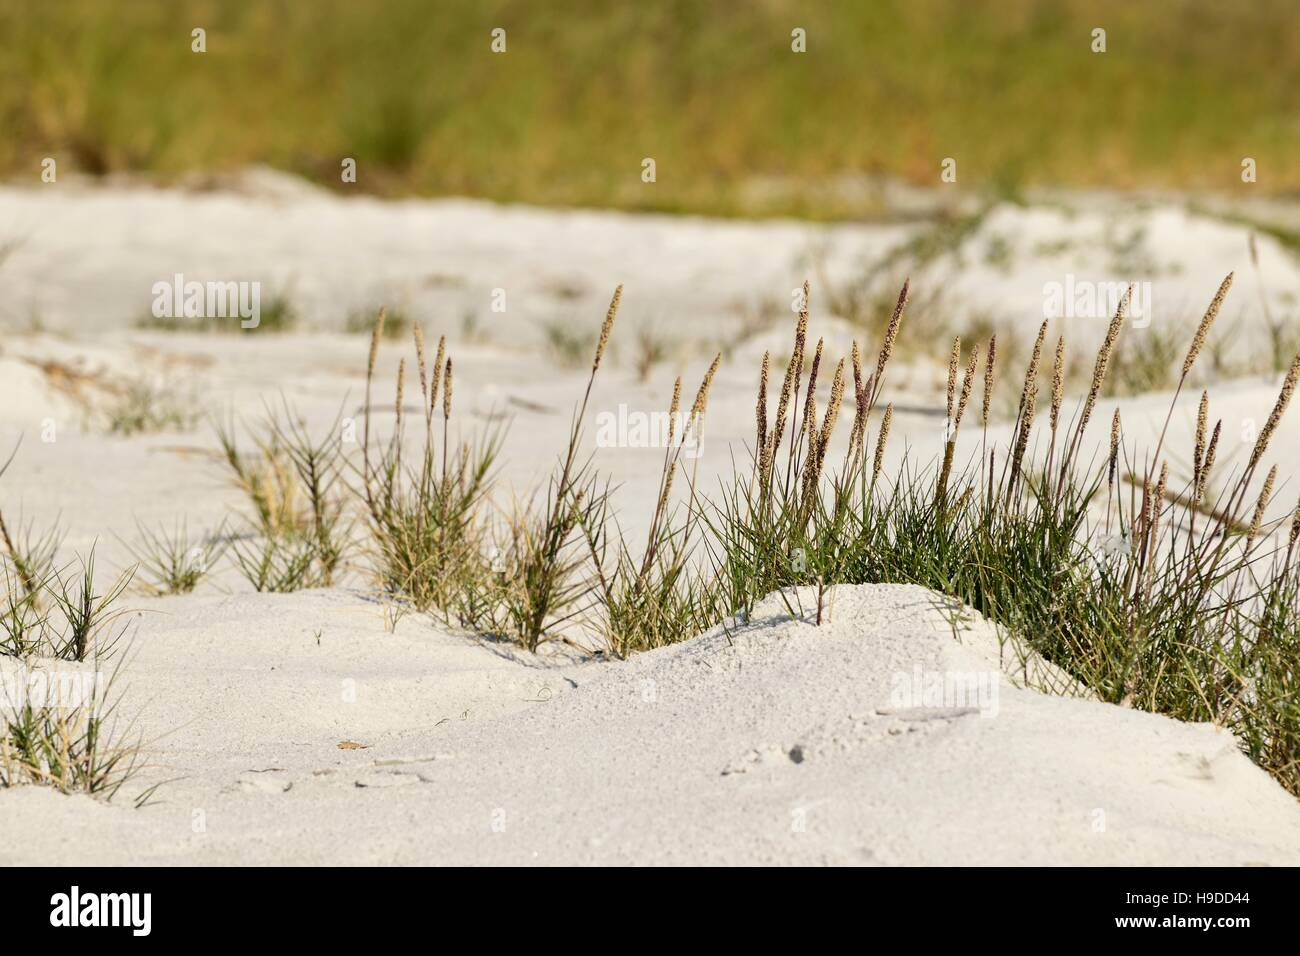 Small unopened sea oats in the sand on the beach. - Stock Image